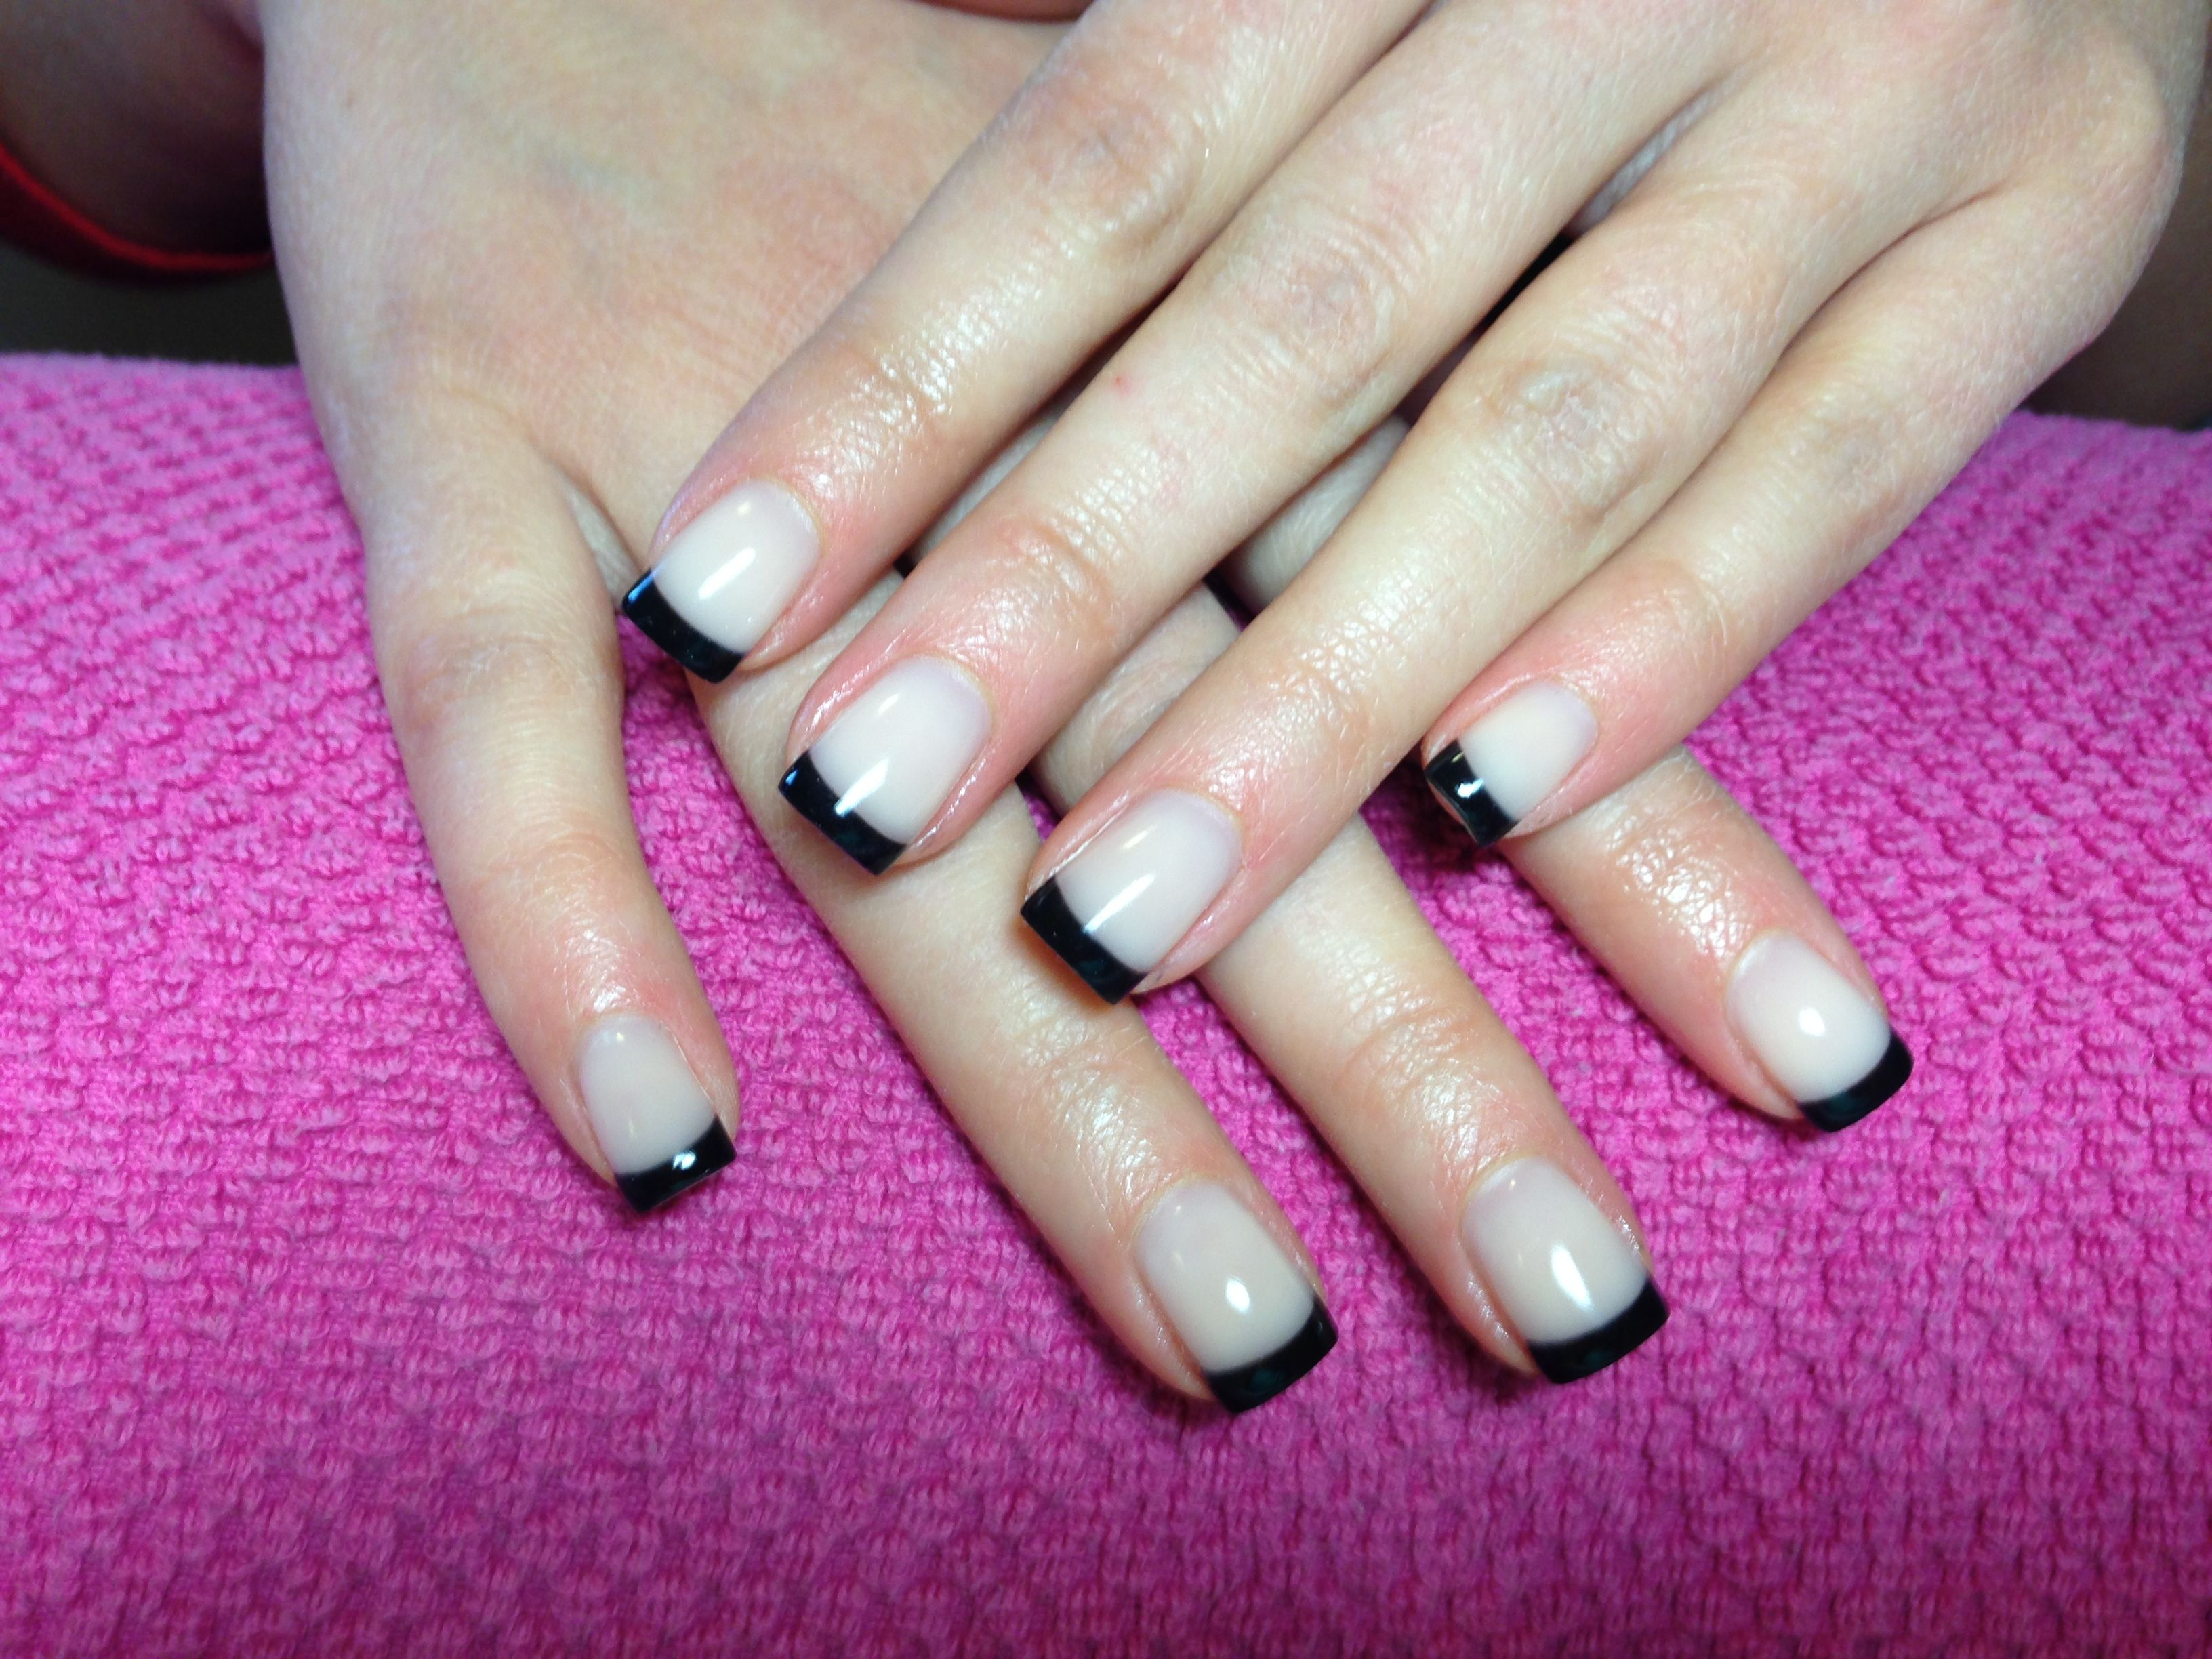 Black tip modern French with nude gel square tips